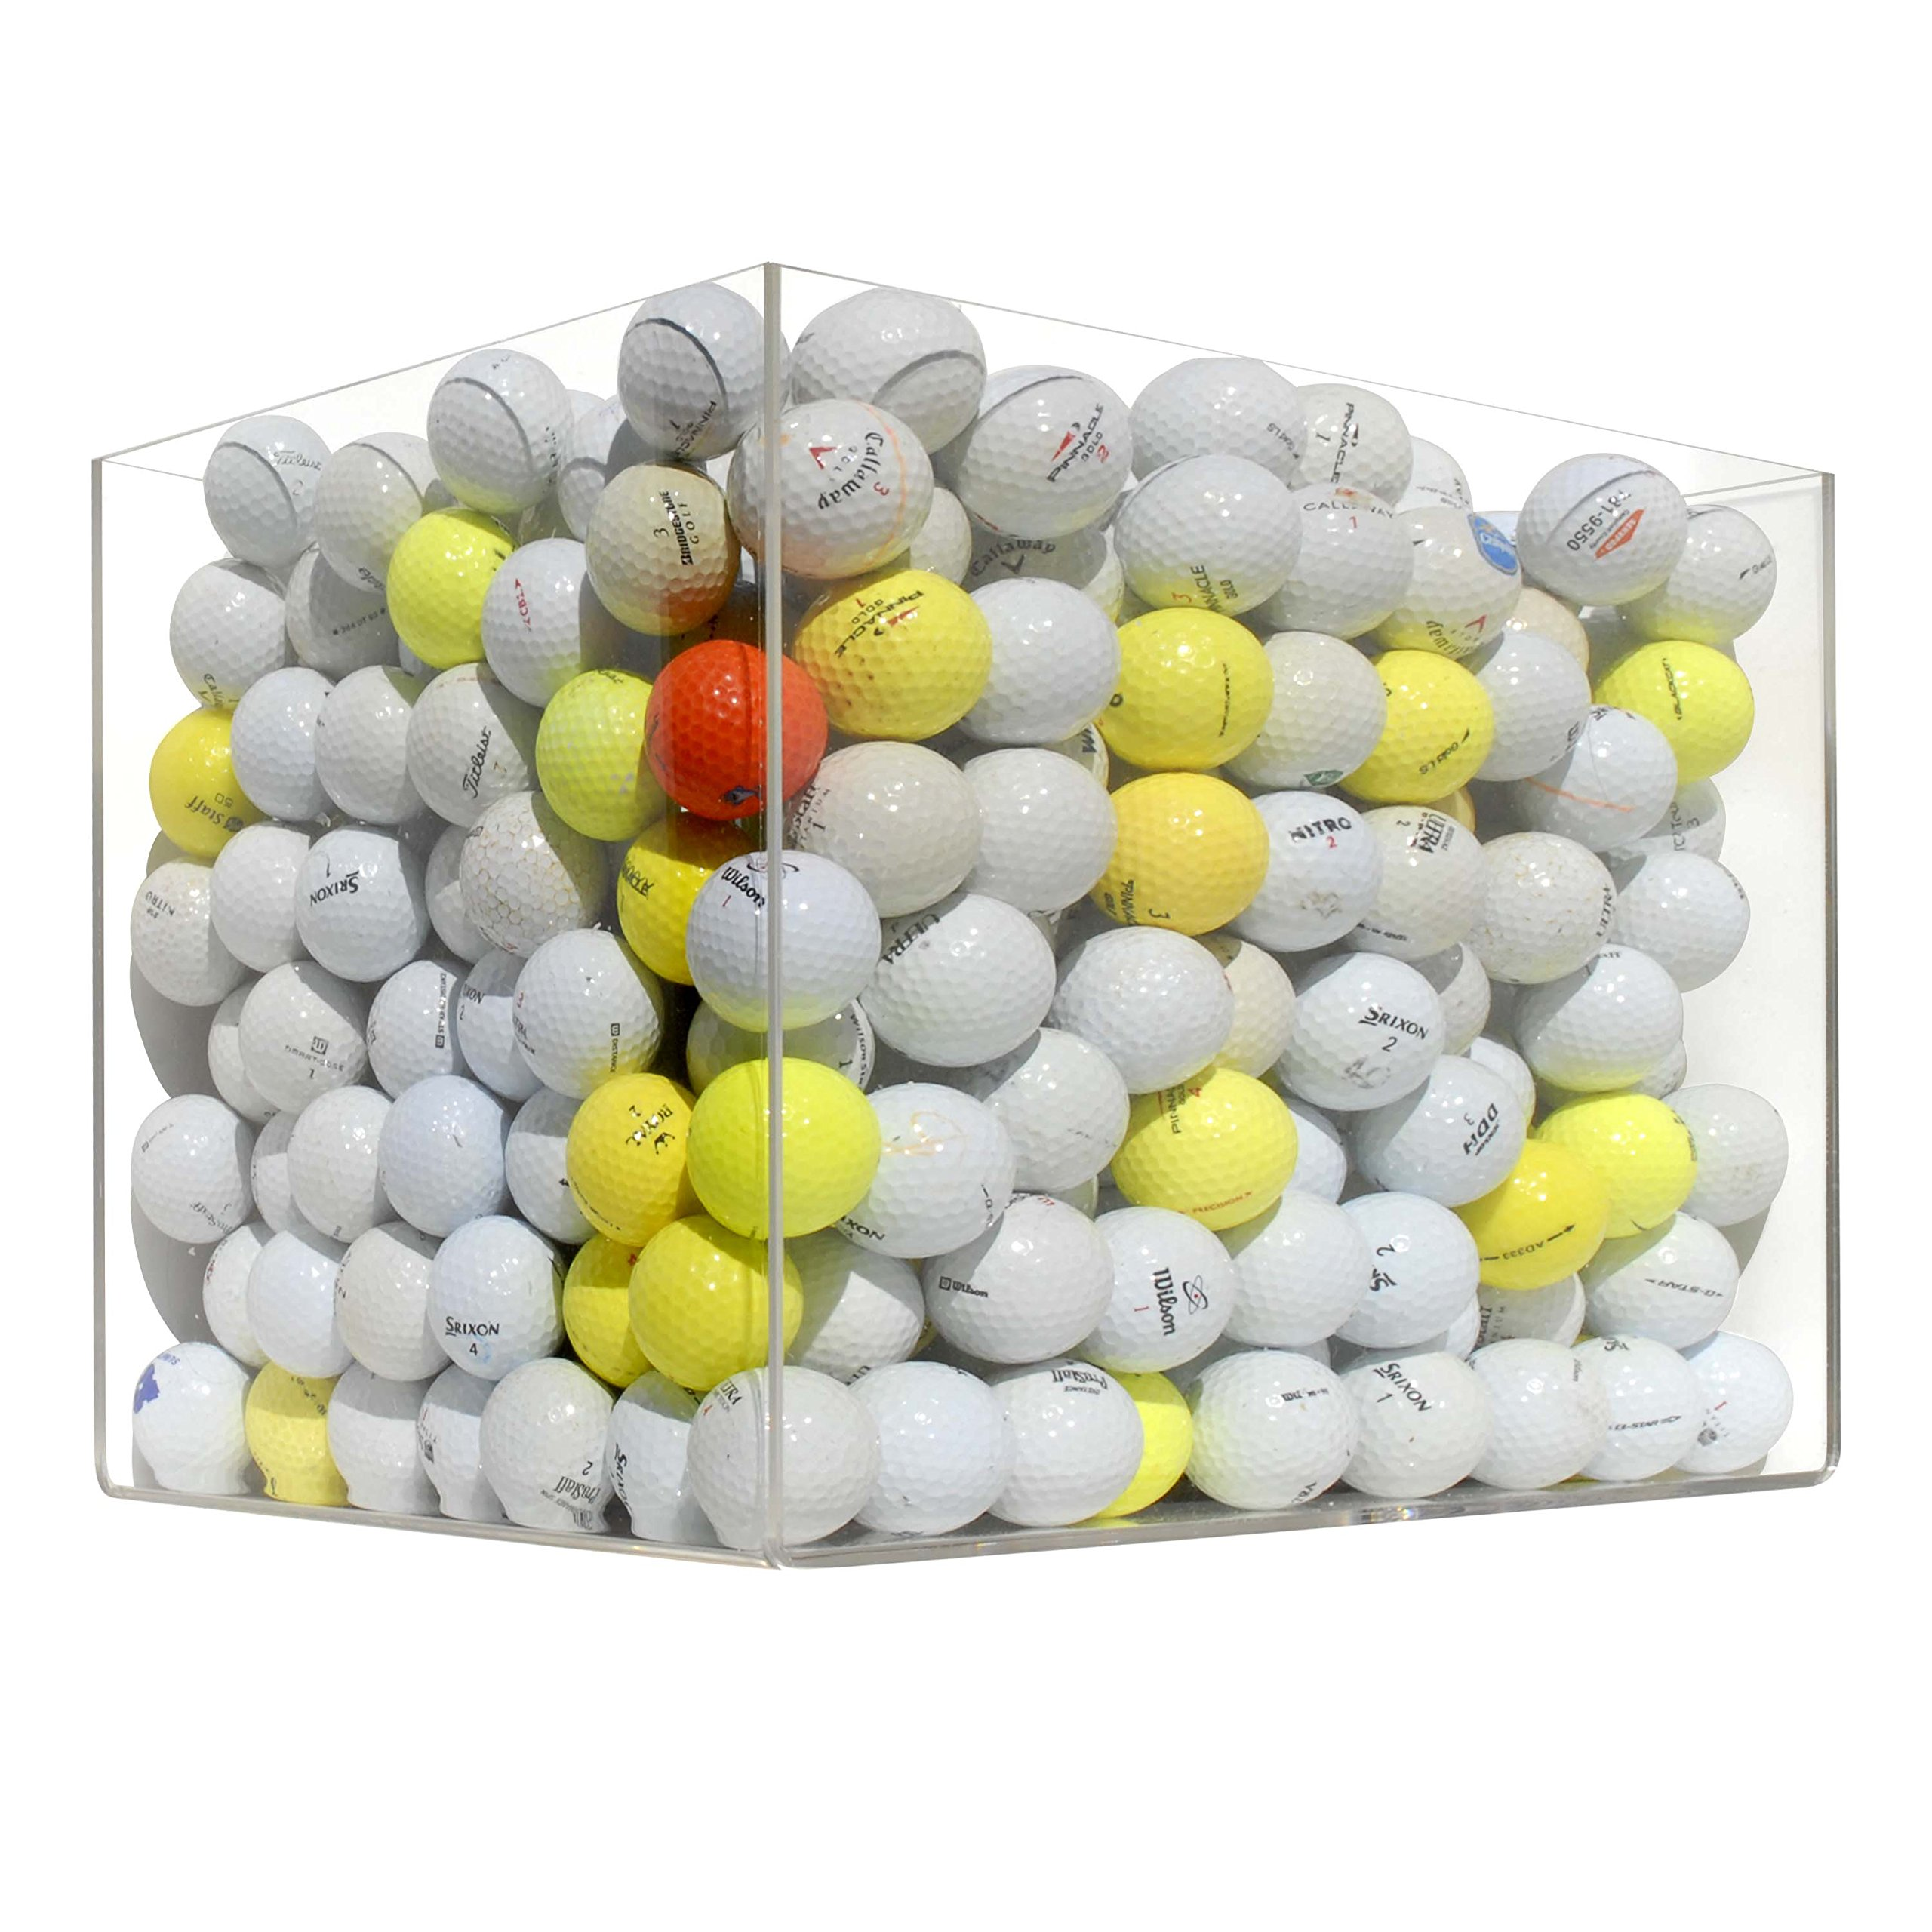 600 D Used Range Ball Hit Away Golf Balls Practice Shag by 5Star-TD